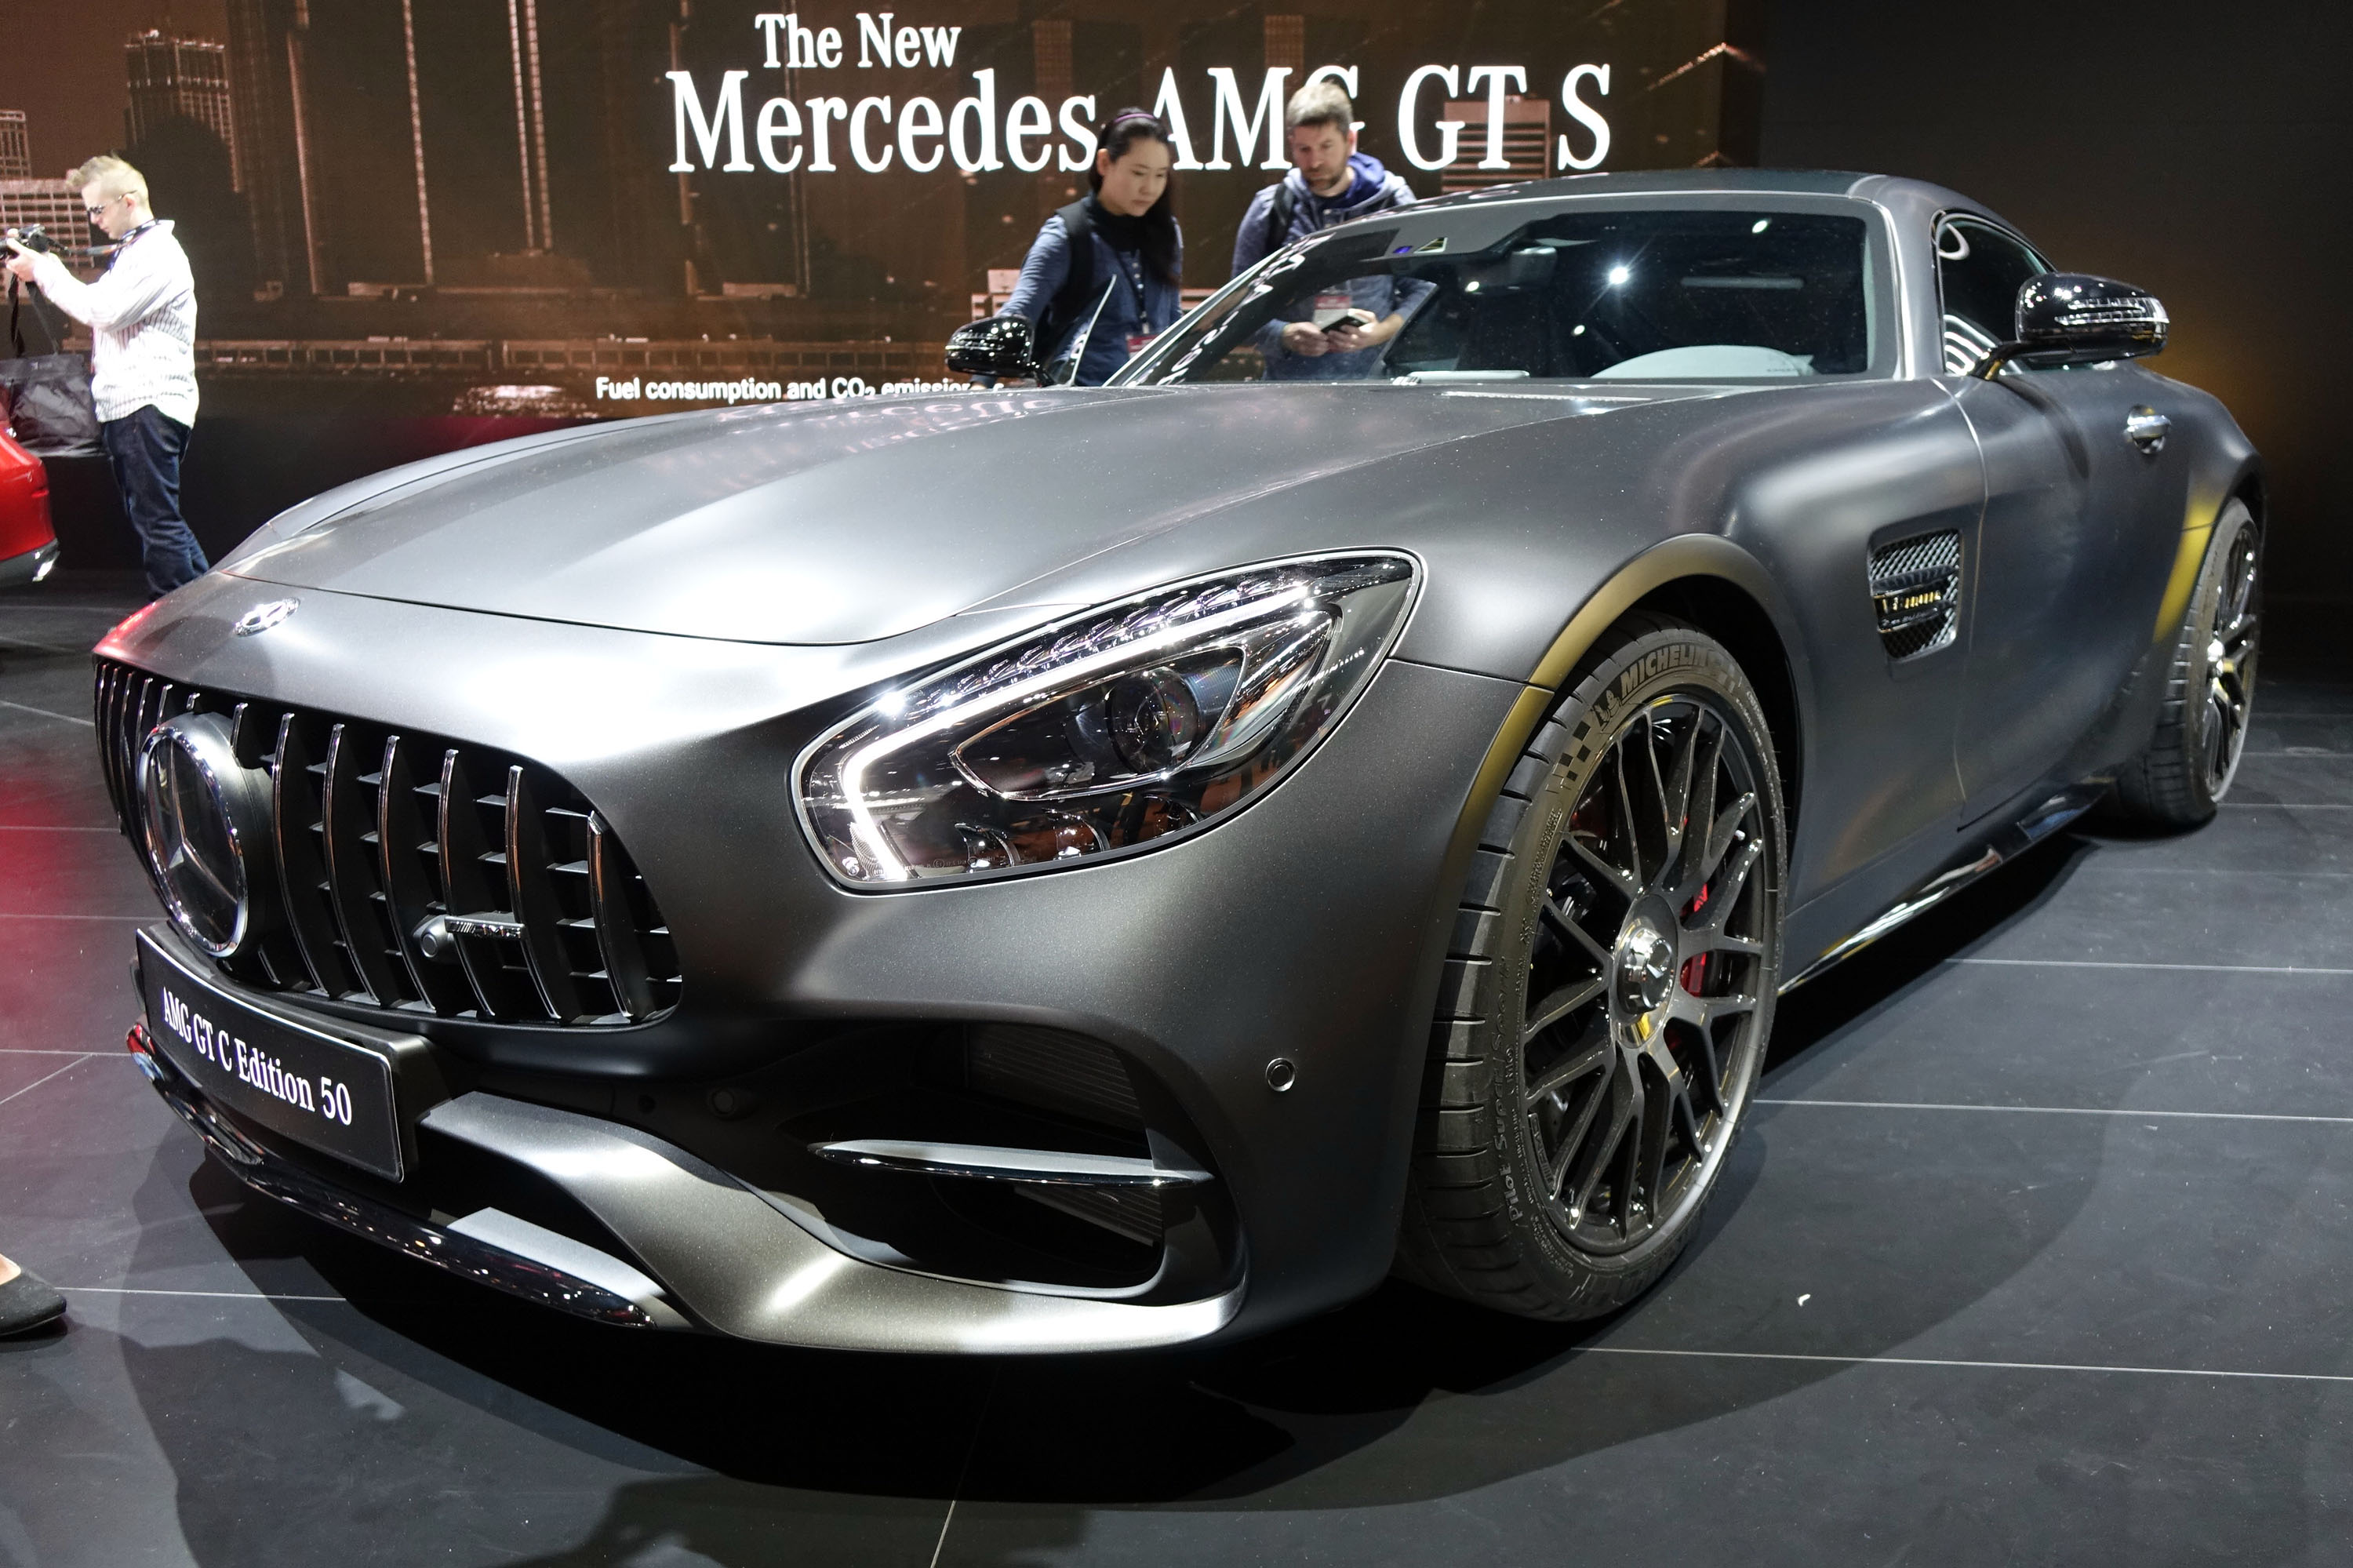 2018 mercedes amg gt c debuts at 2017 detroit auto show - Mercedes car show ...